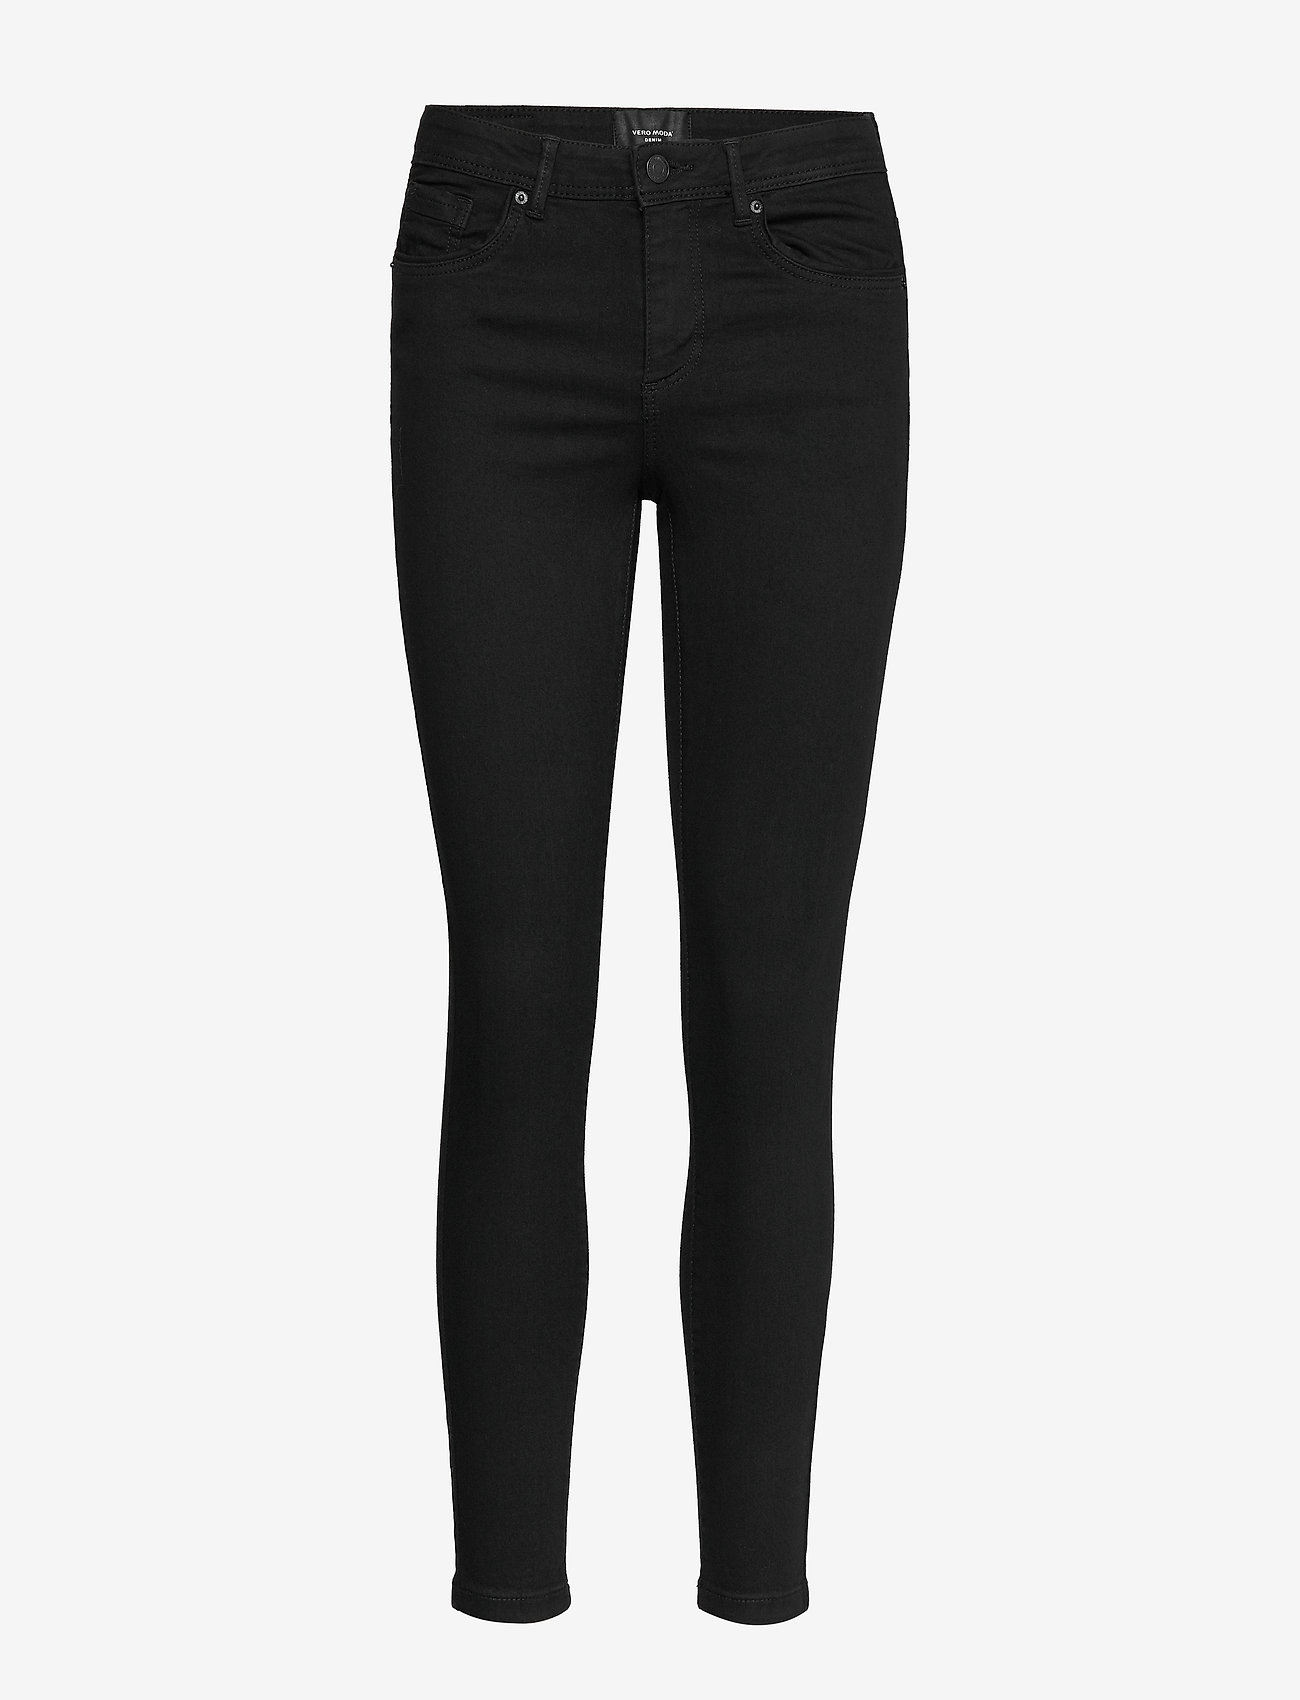 Vero Moda - VMTANYA MR S PIPING JEANS VI120 GA - skinny jeans - black - 0